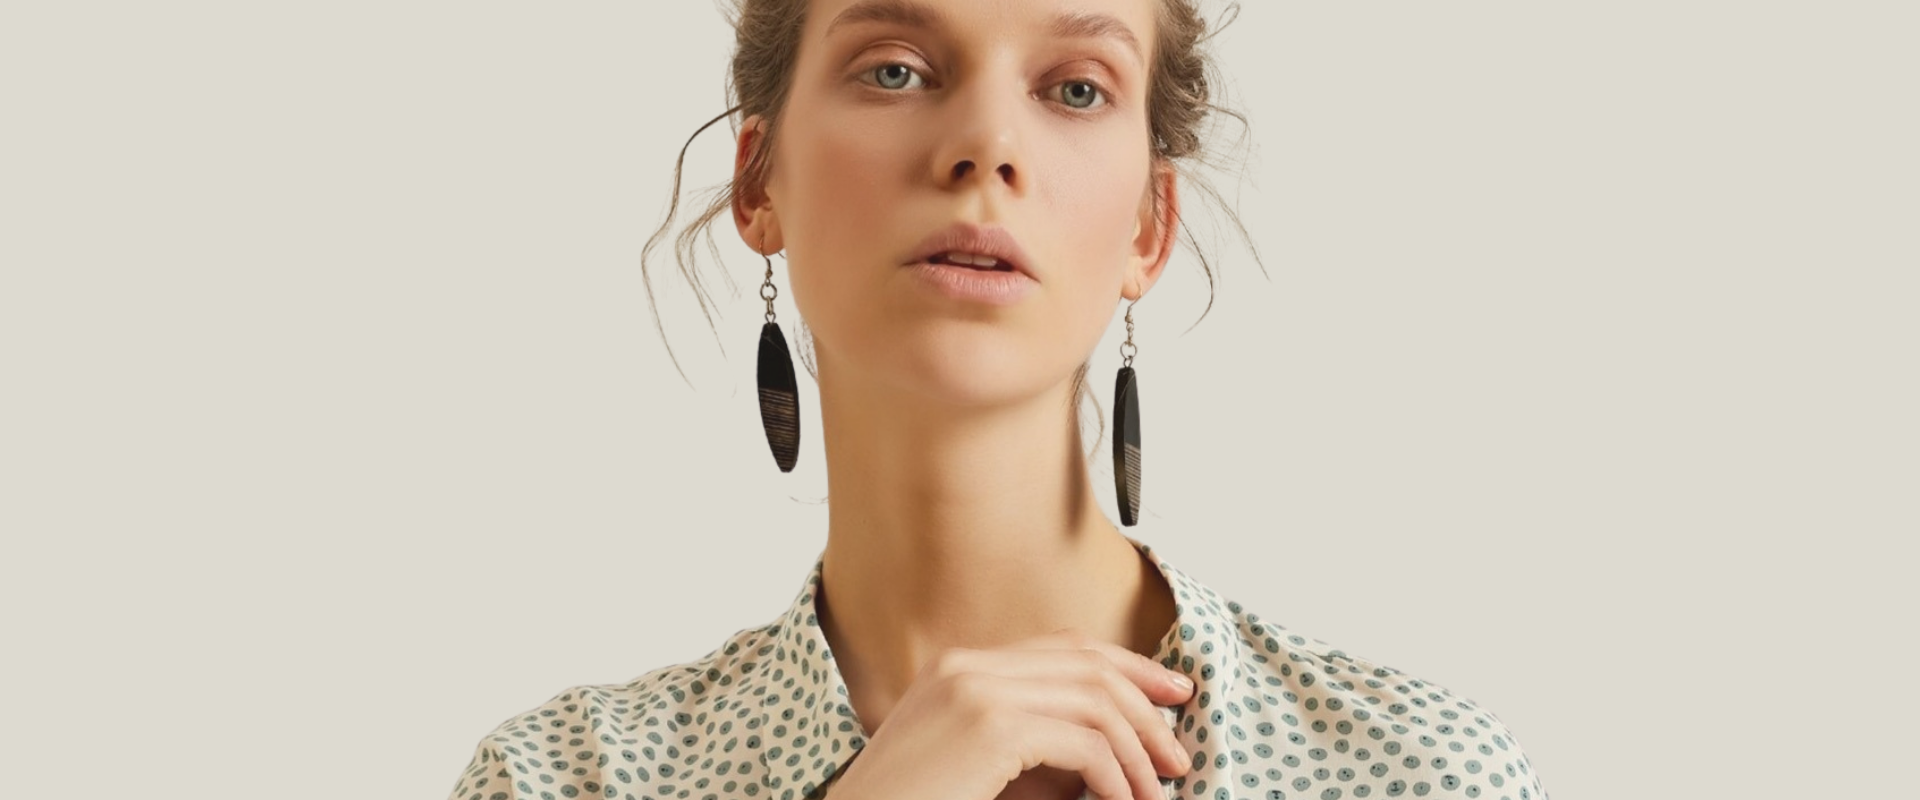 Model wearing large statement earrings